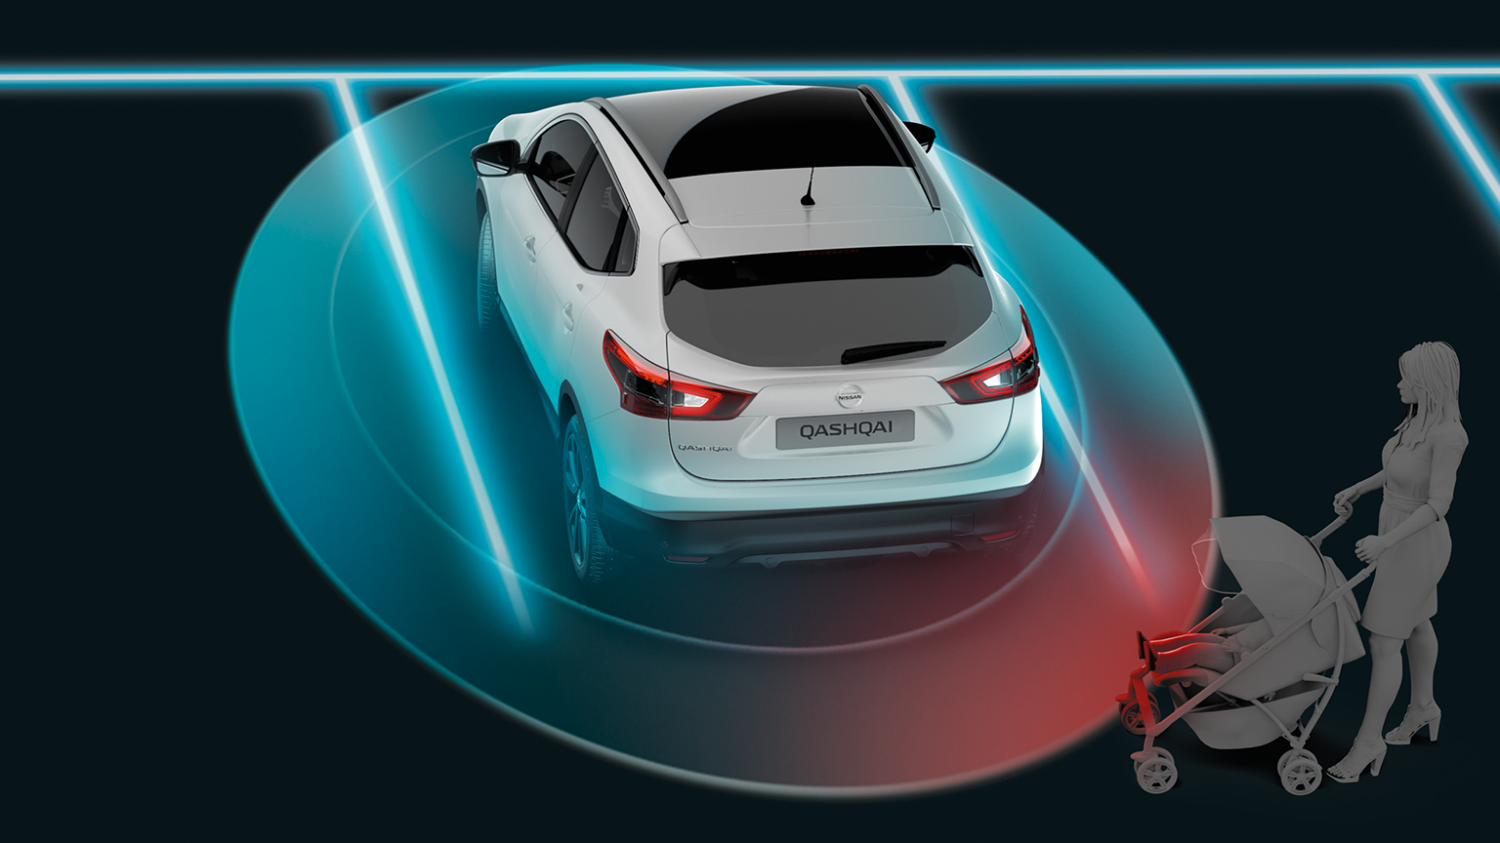 Nissan Qashqai | Moving Object Detection